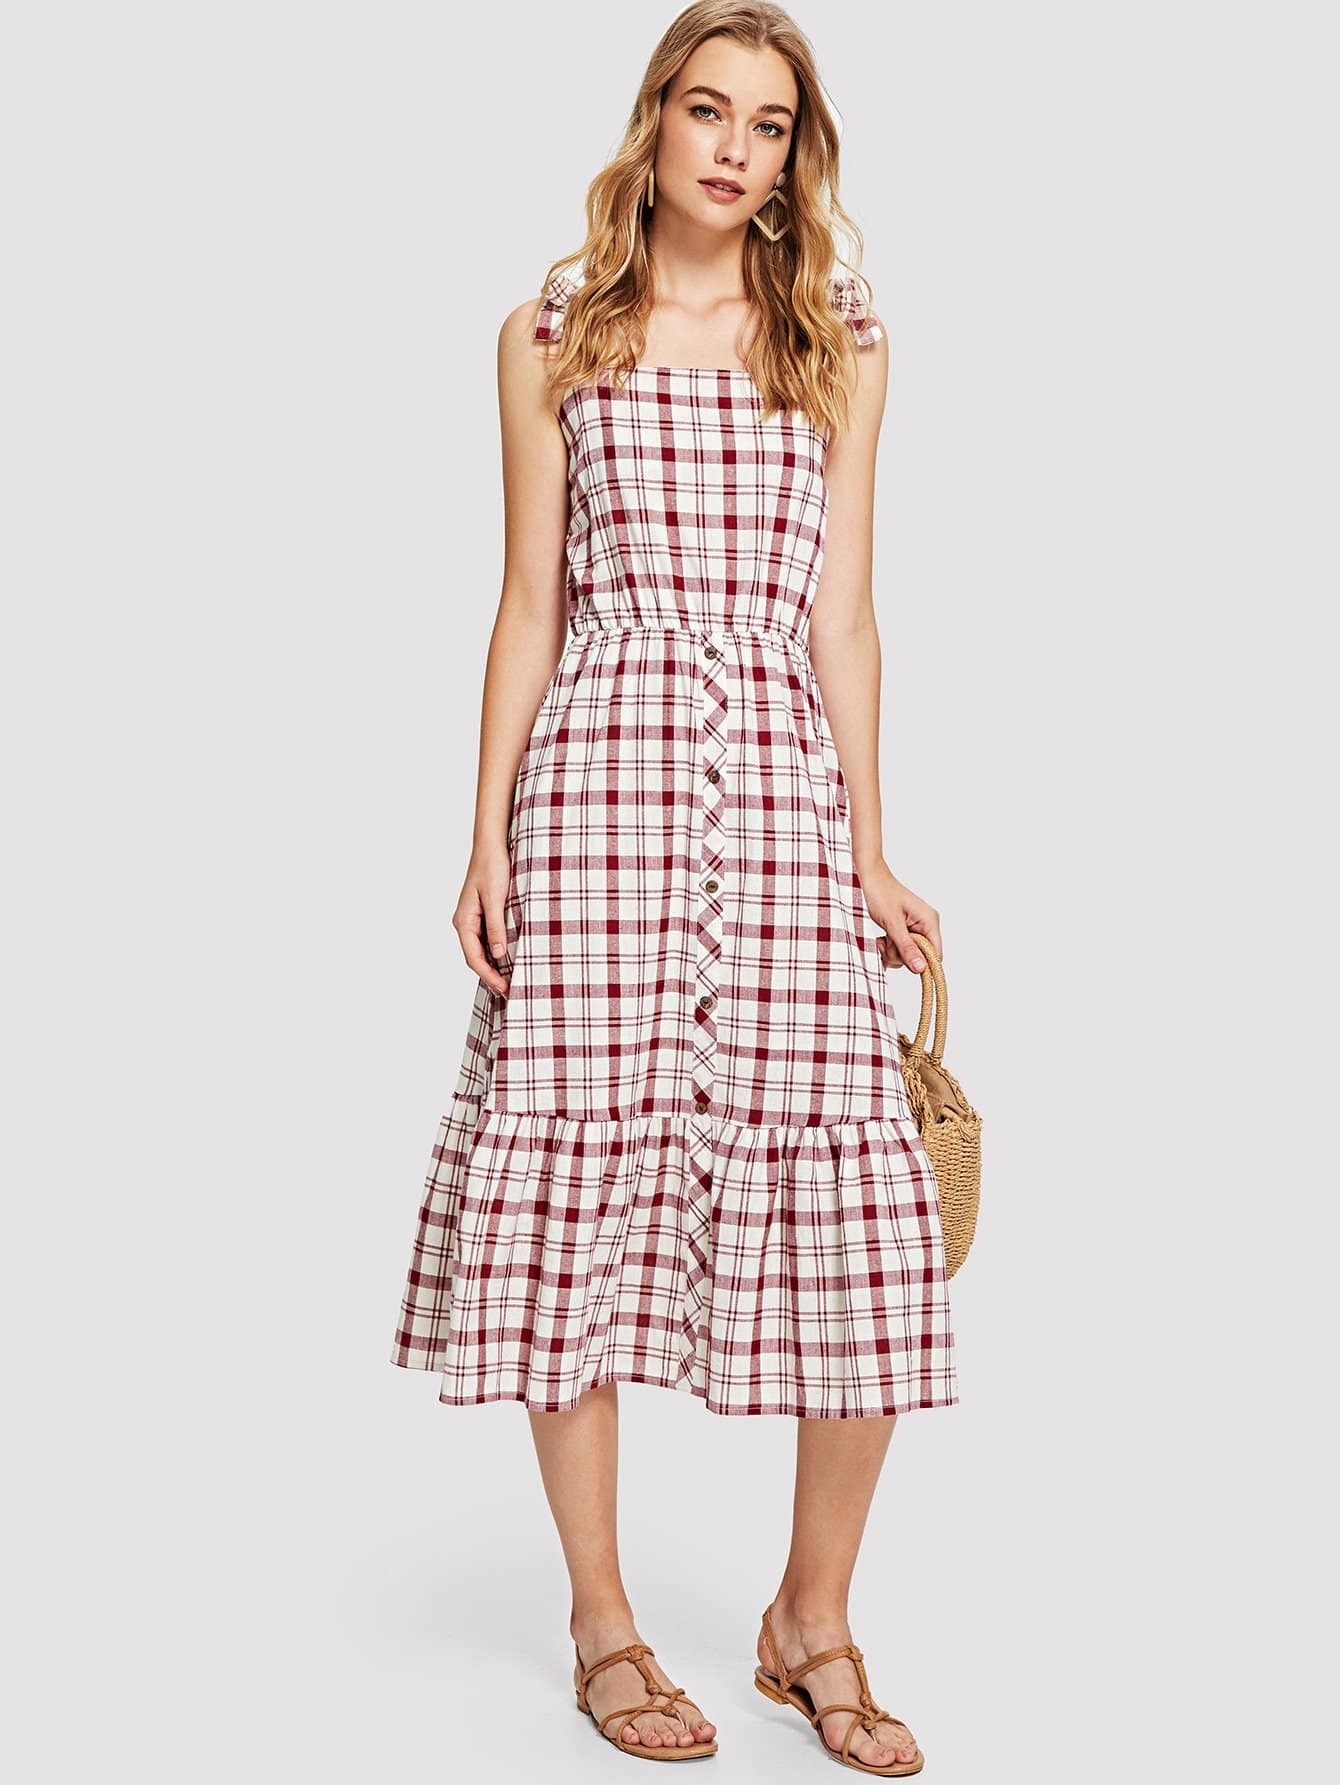 Ruffle Hem Checked Dress dls mb6i white